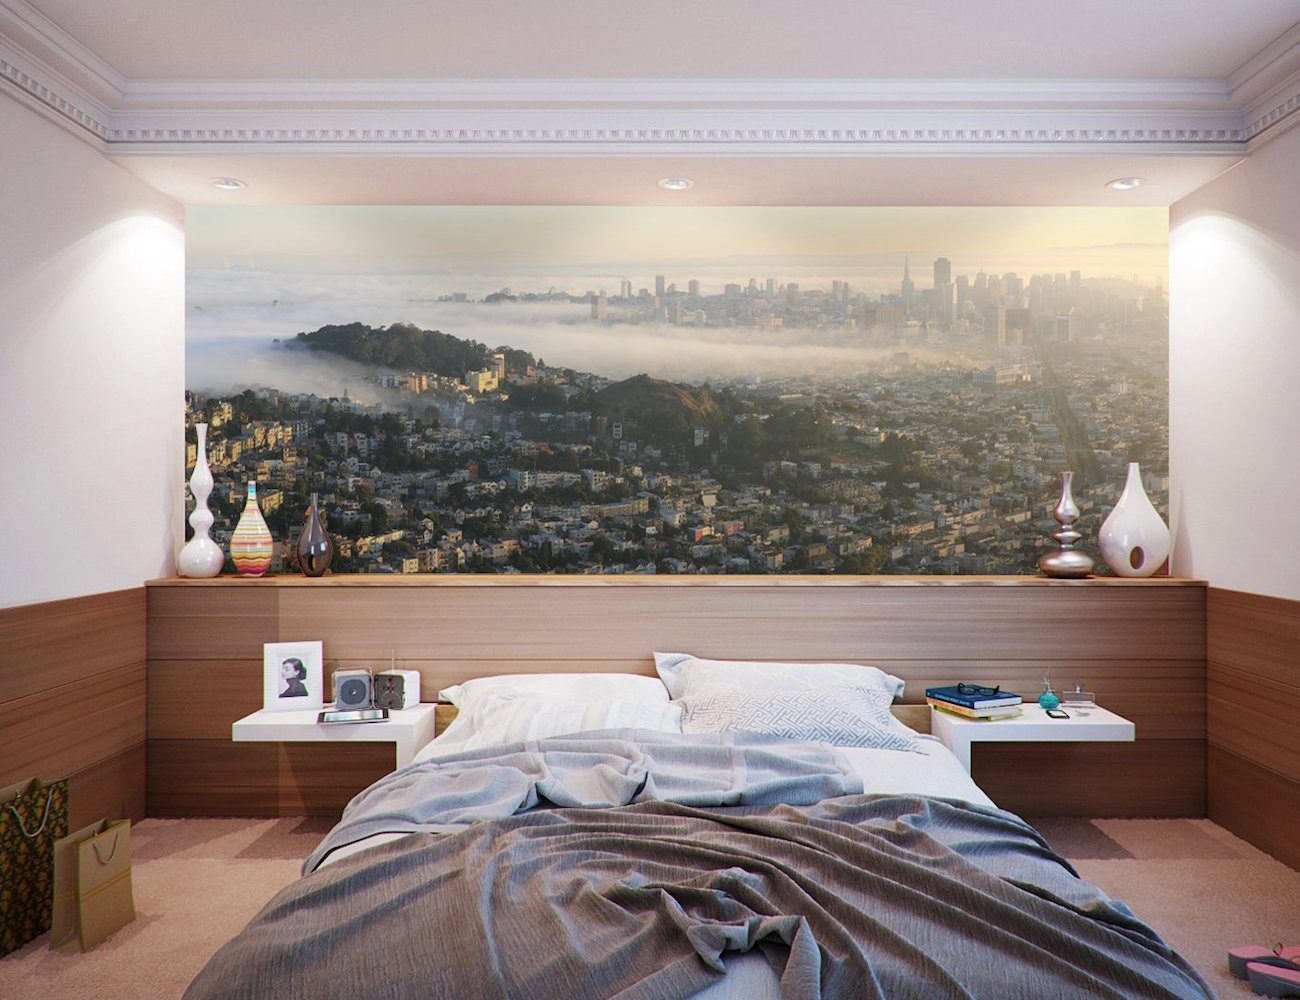 San+Francisco+Panoramic+Skyline+Wall+Mural+By+Eazywallz